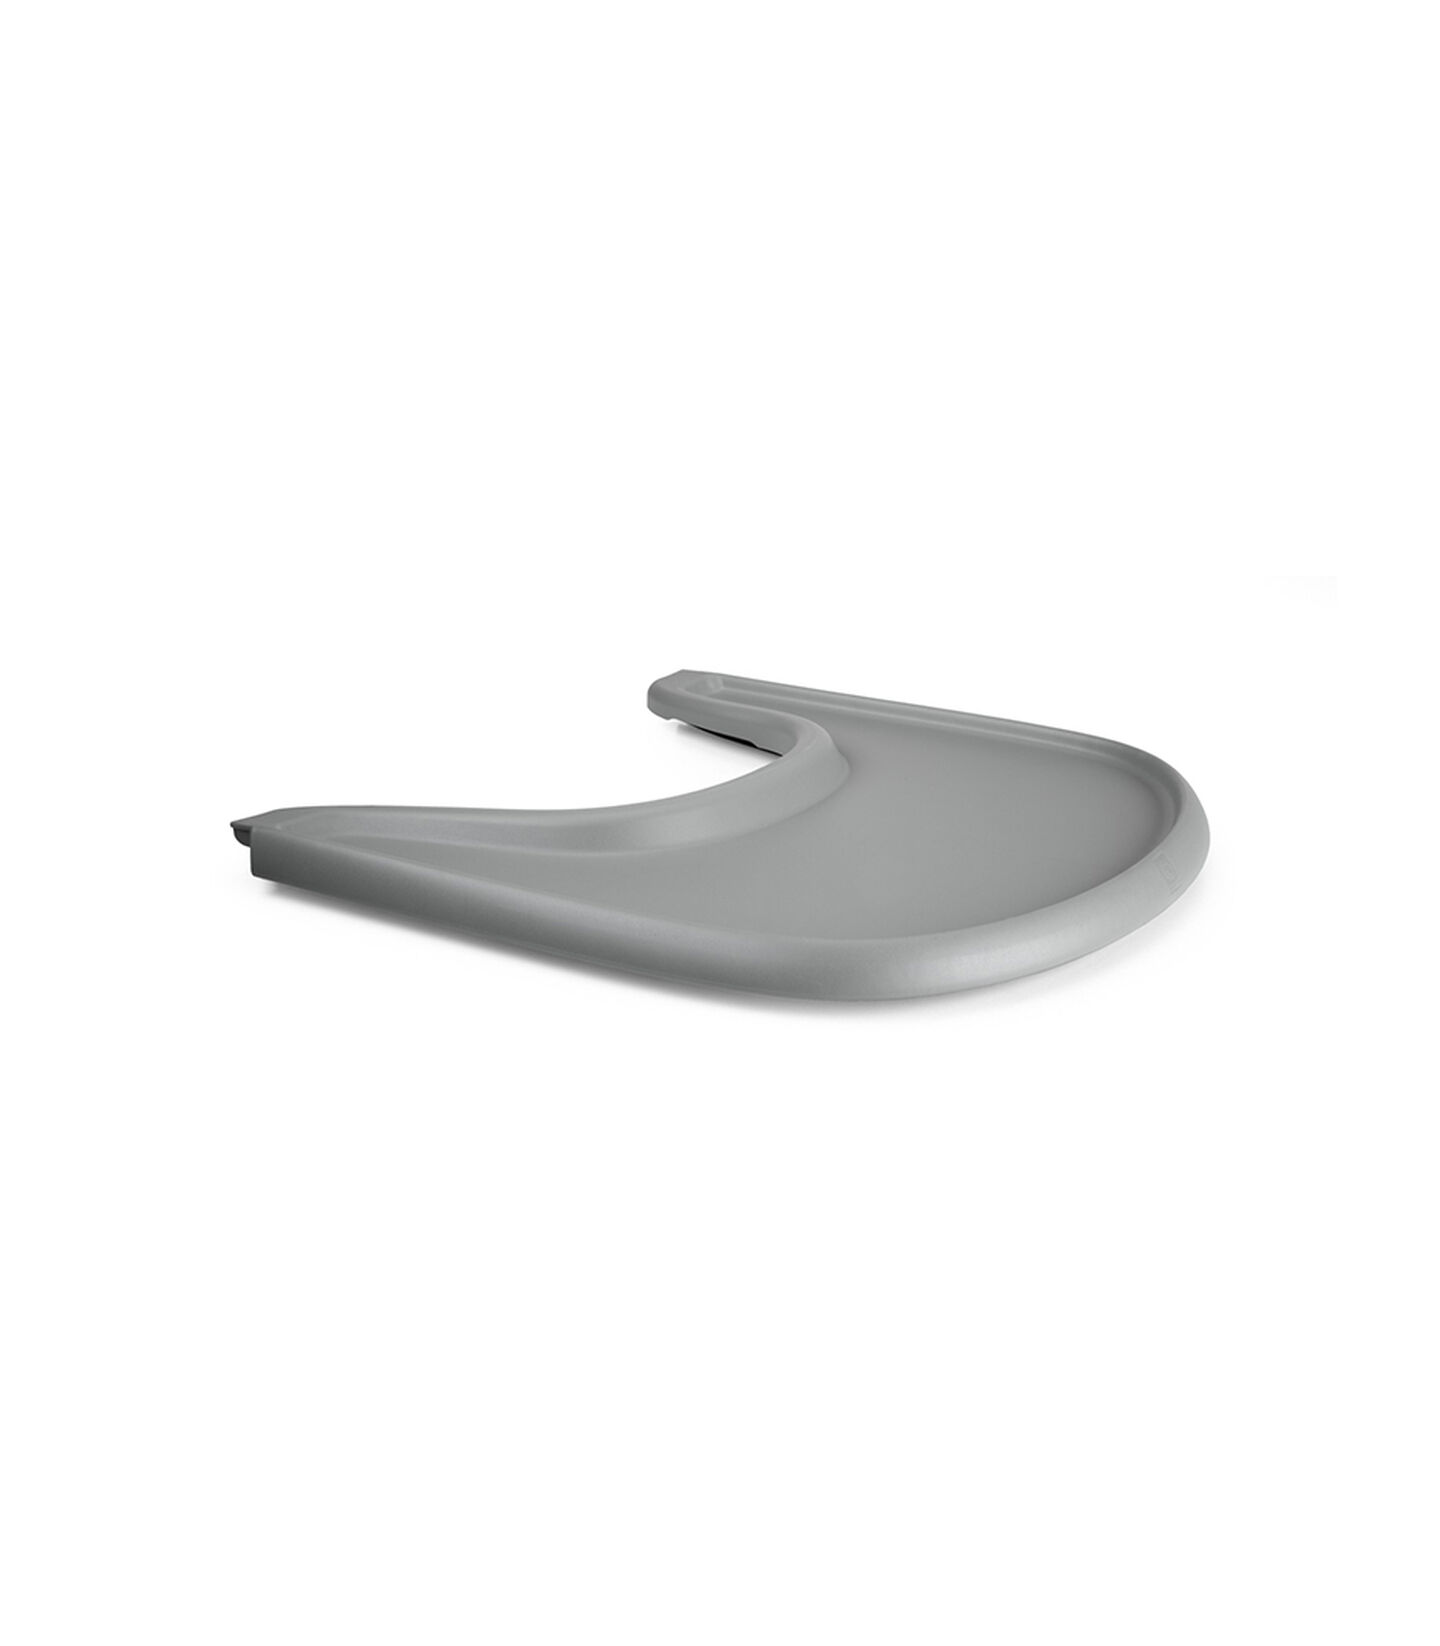 Stokke® Tray Storm Grey, Storm Grey, mainview view 1